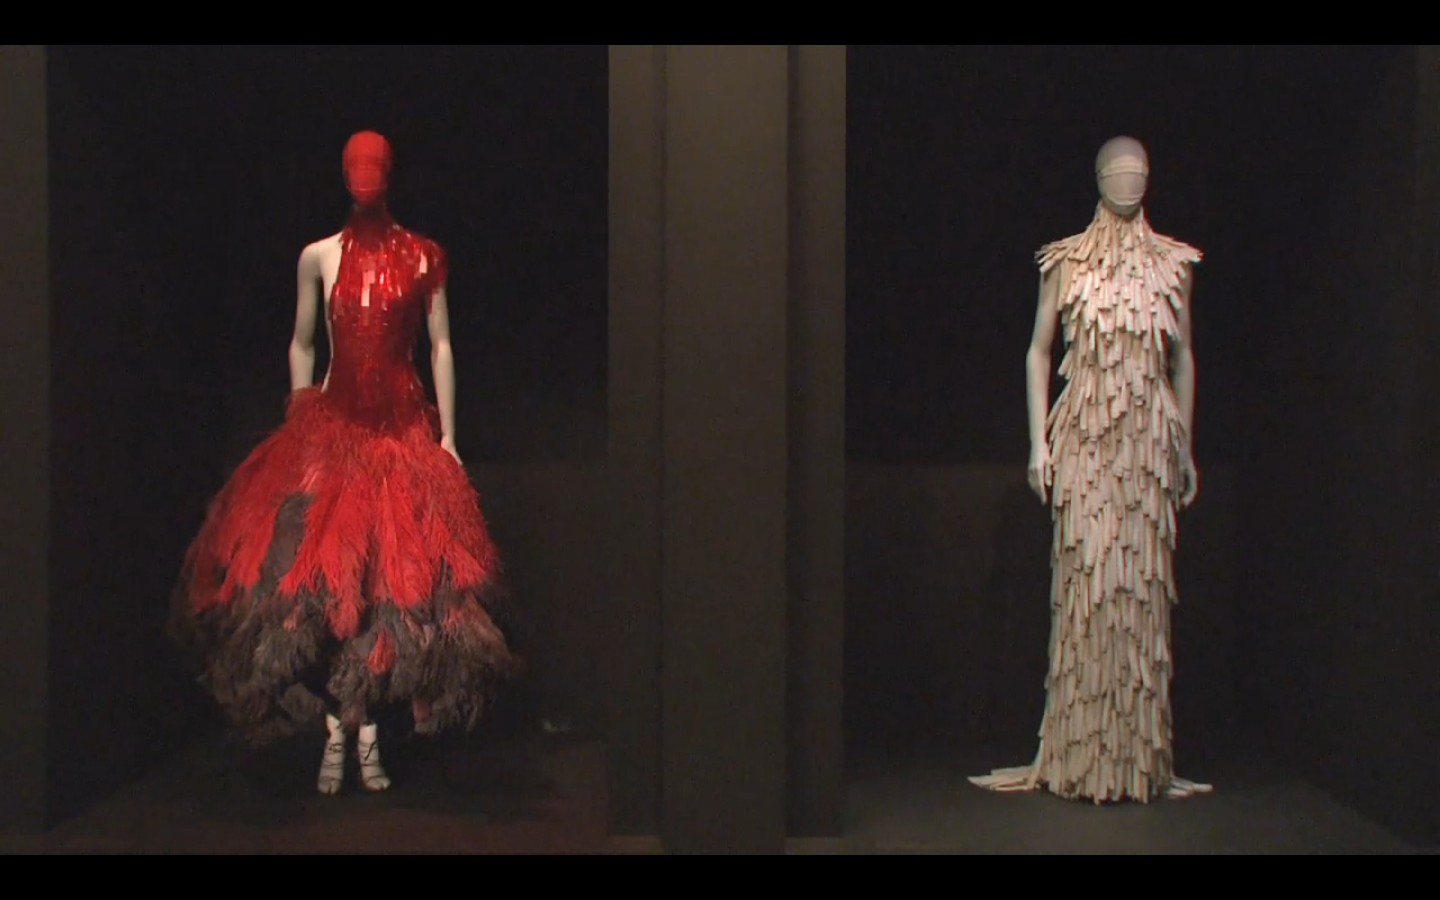 Entry to Savage Beauty, Alexander McQueen at the Met